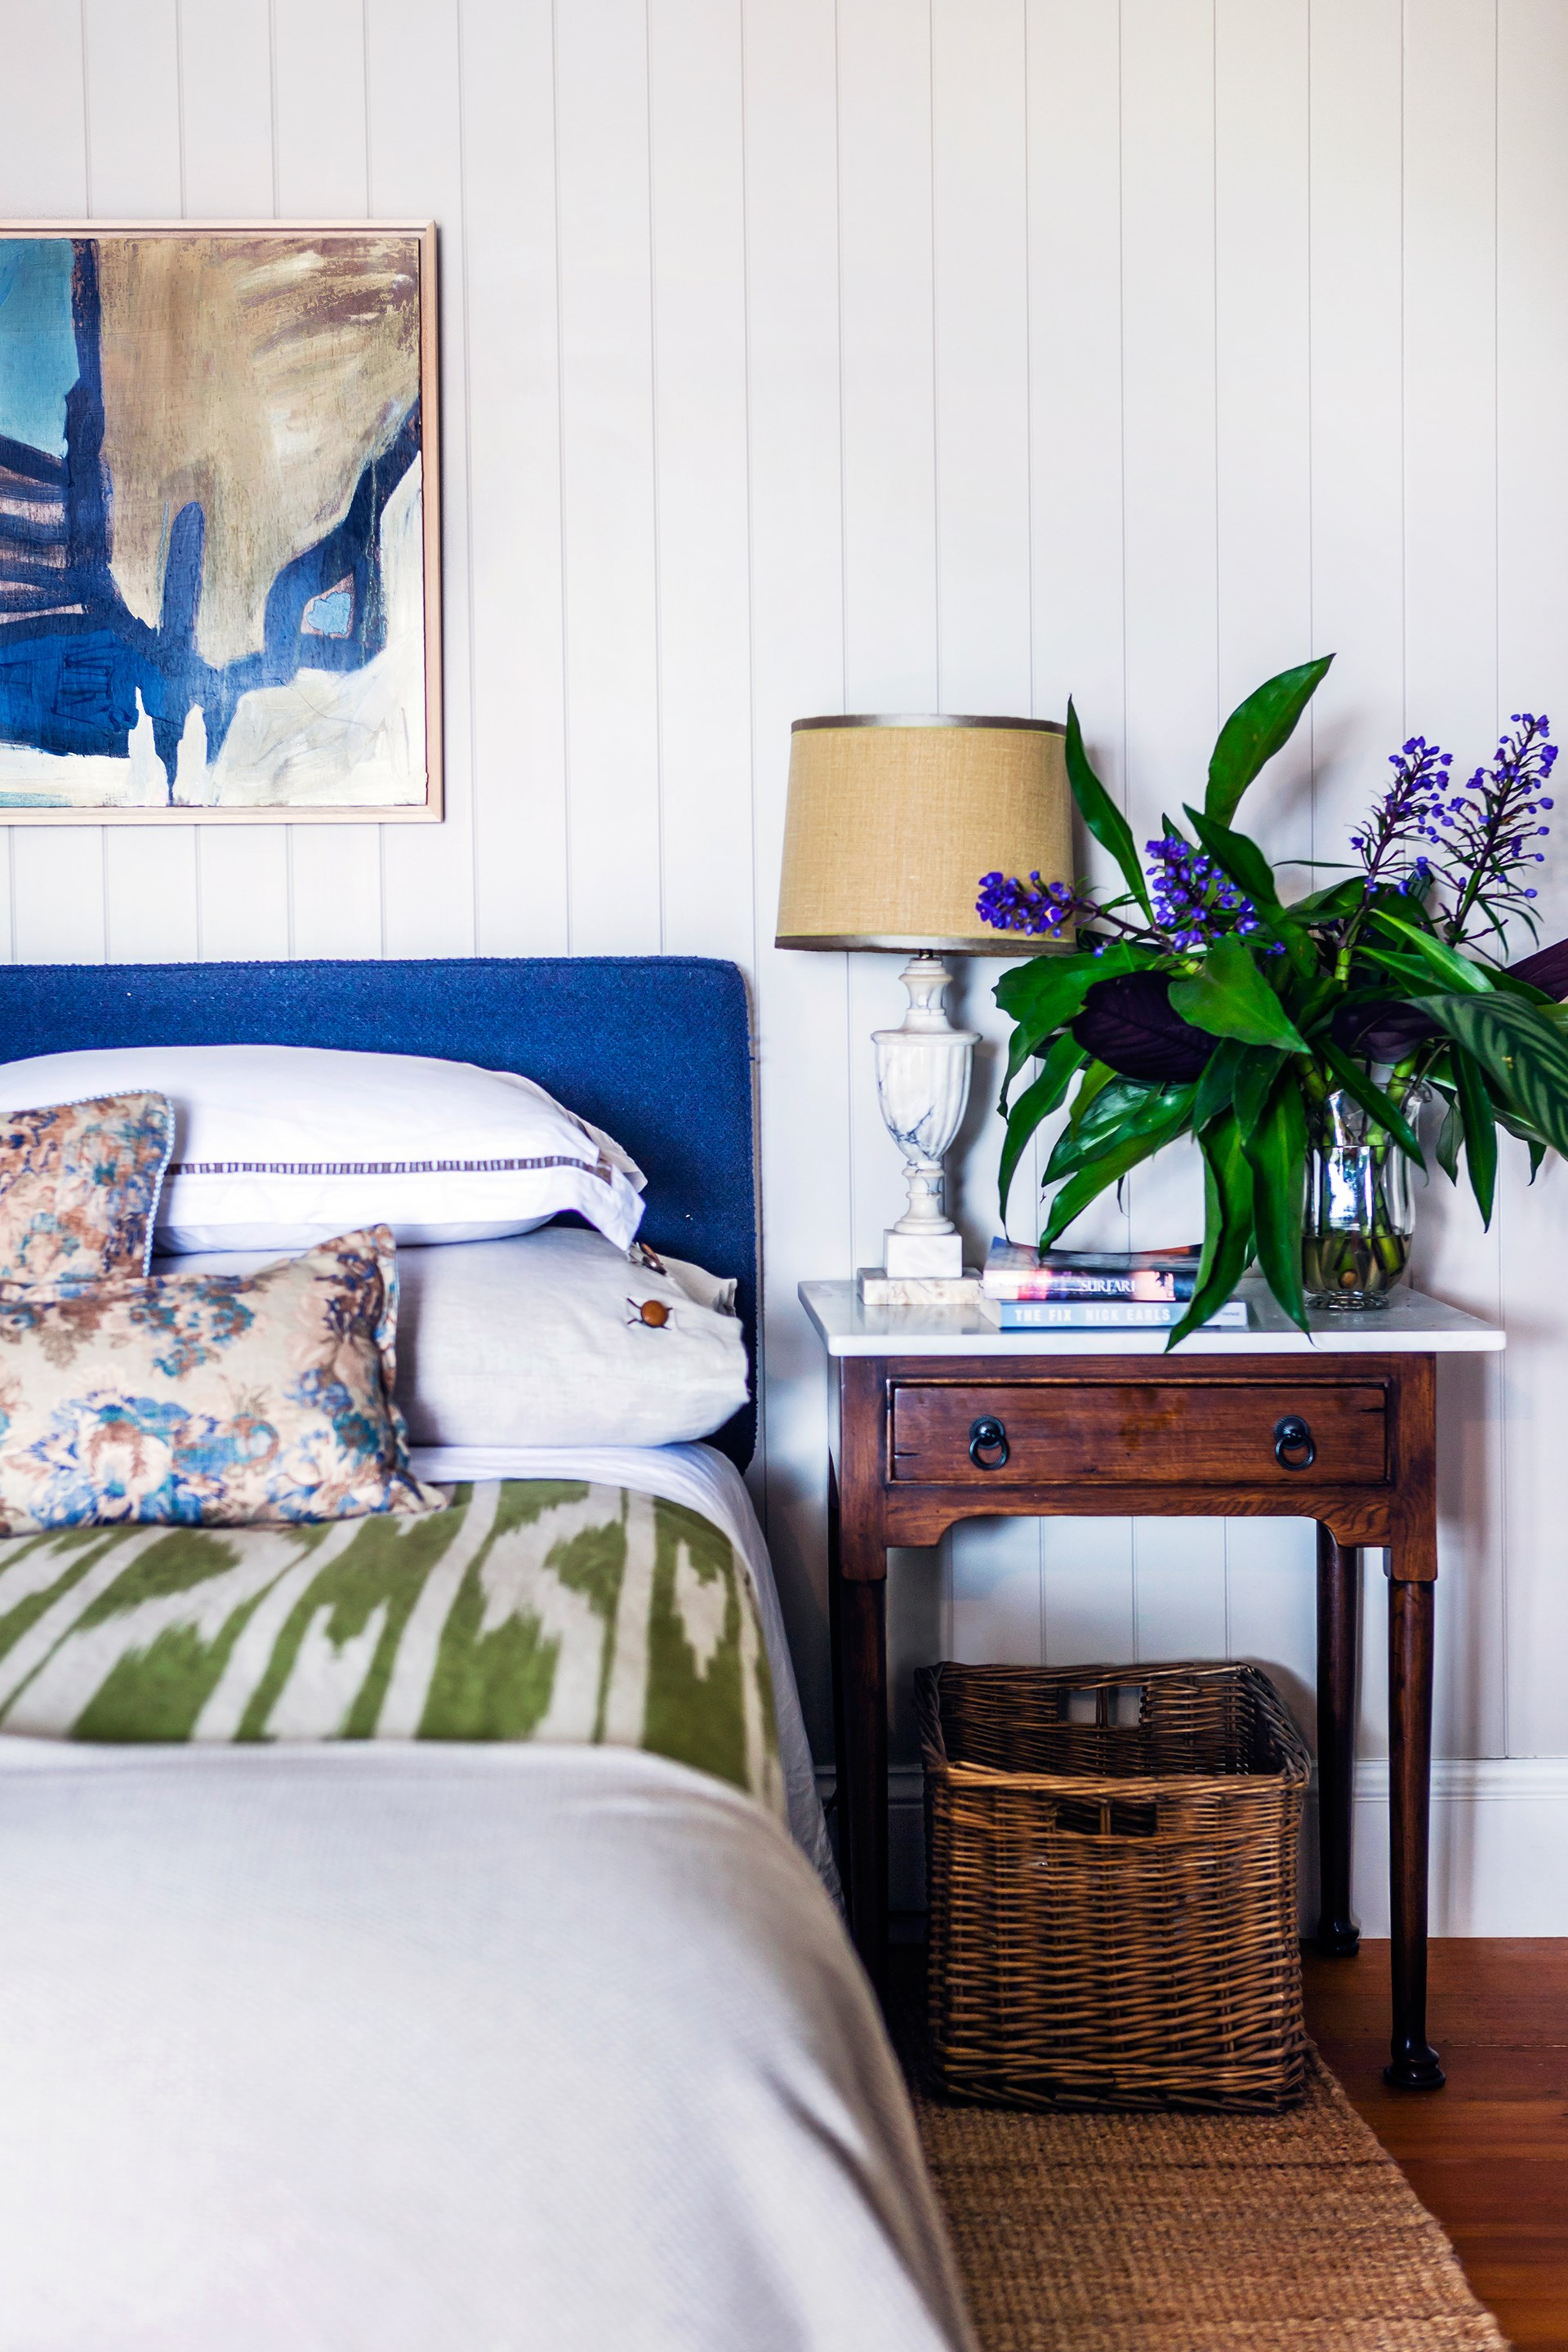 """The bedroom should be your sanctuary, [get 15 tips for organising this space and keeping it that way](http://www.homestolove.com.au/how-to-clean-your-room-and-keep-it-that-way-3260